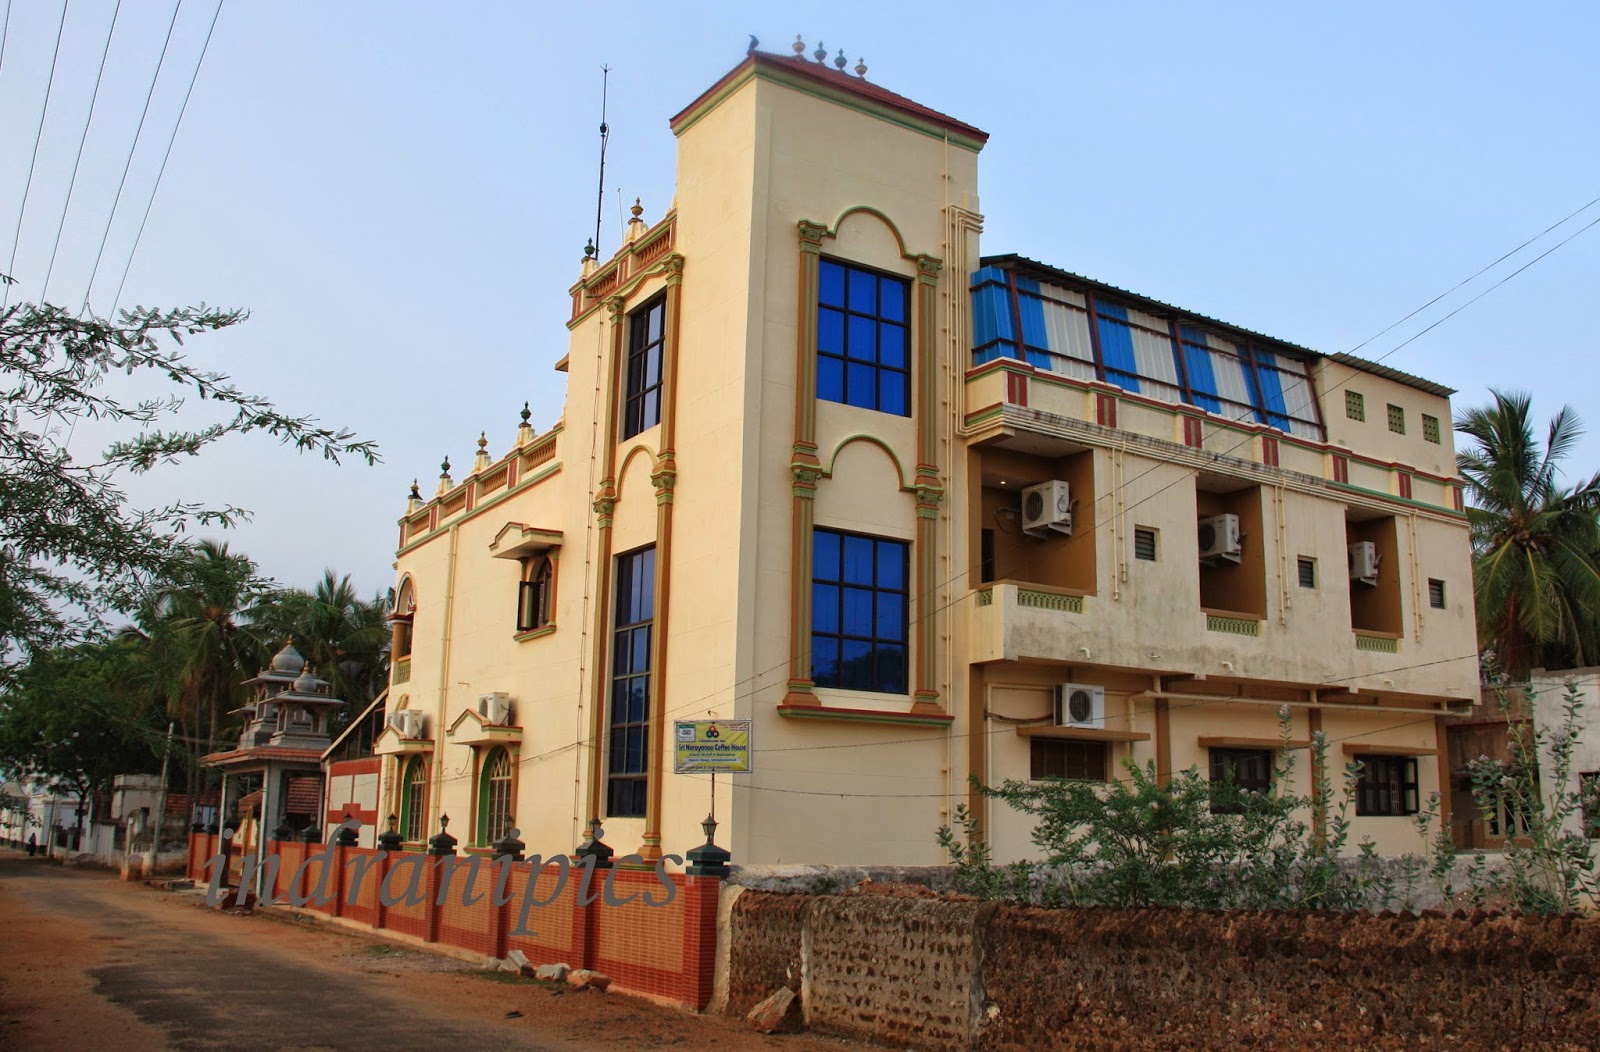 Photos of Chettinad House Designs in Karaikudi, Tamil Nadu - i Share